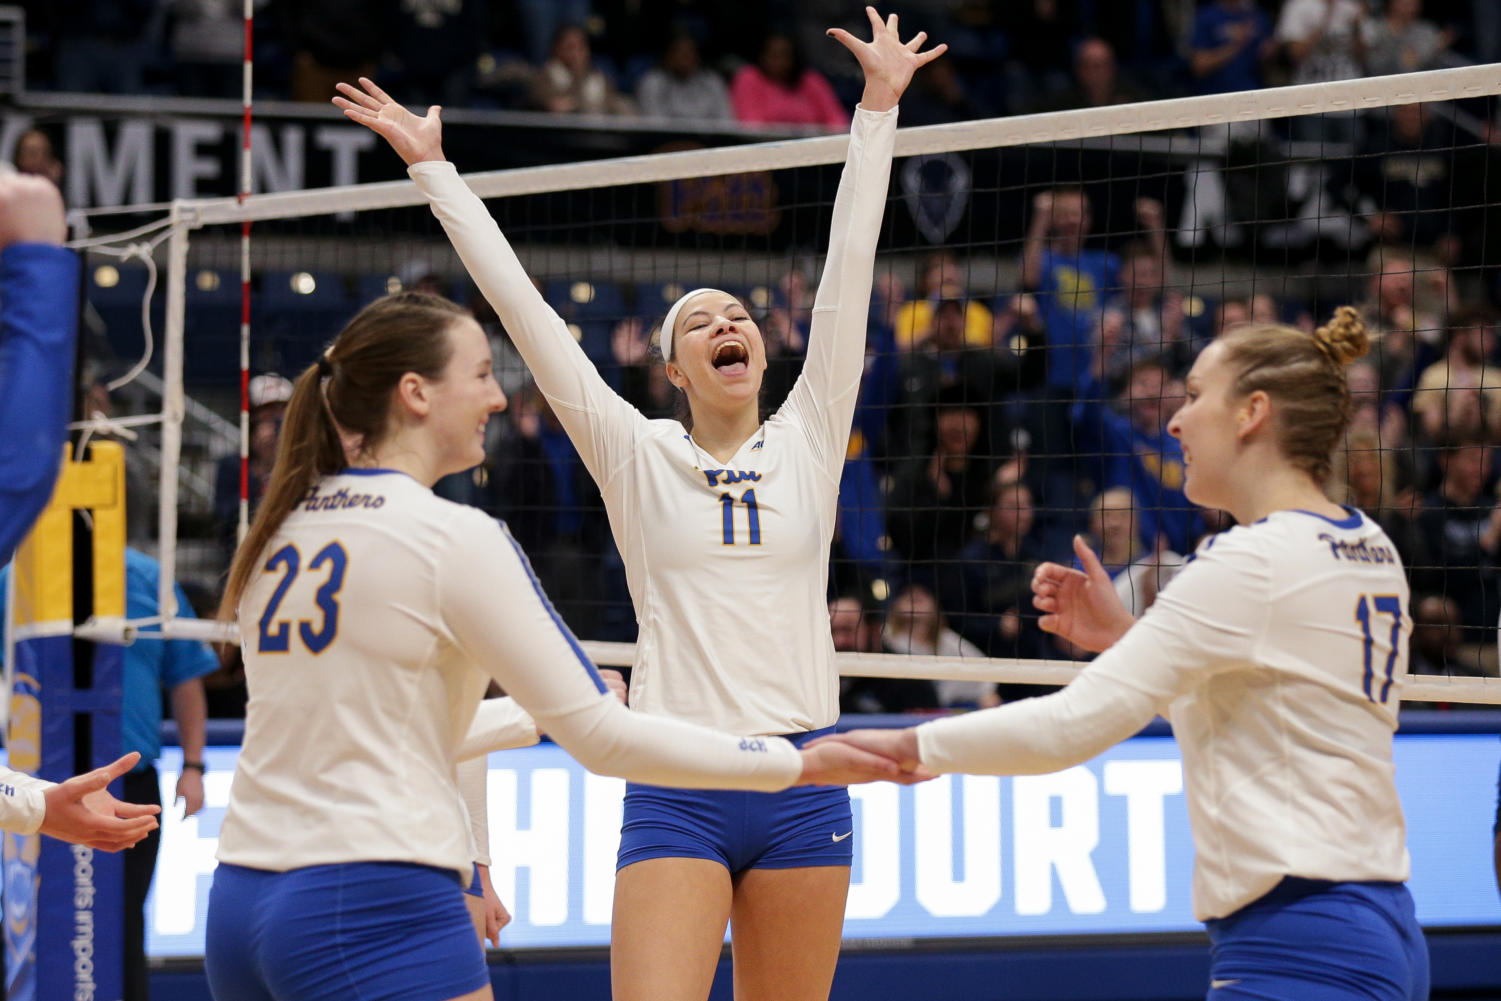 Sophomore middle blocker Sabrina Starks celebrates after beating Howard in the first round of the NCAA volleyball tournament.